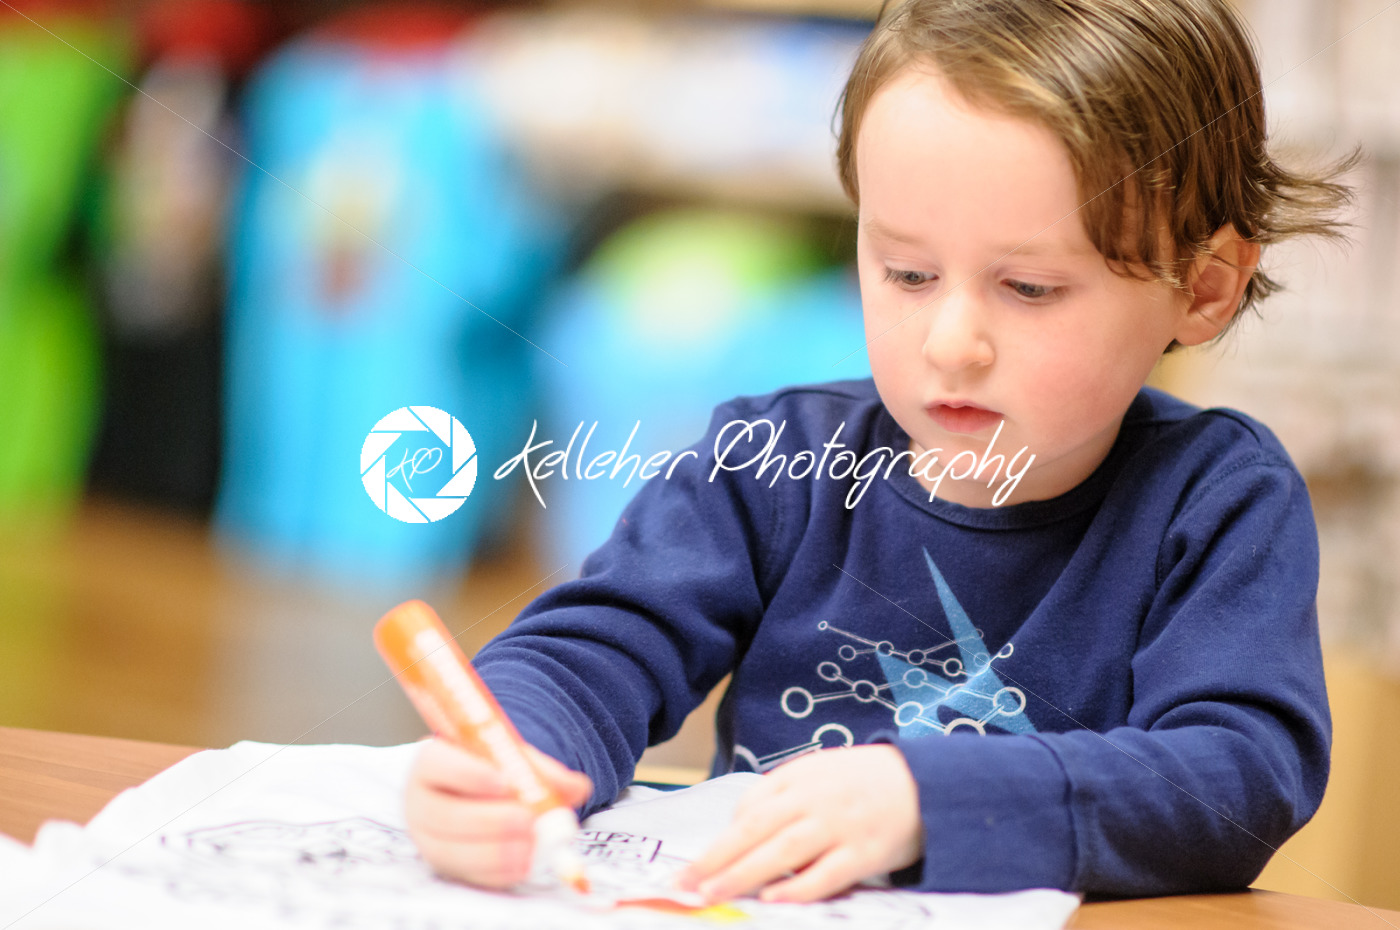 Young boy sitting down at desk indoors coloring with markers - Kelleher Photography Store